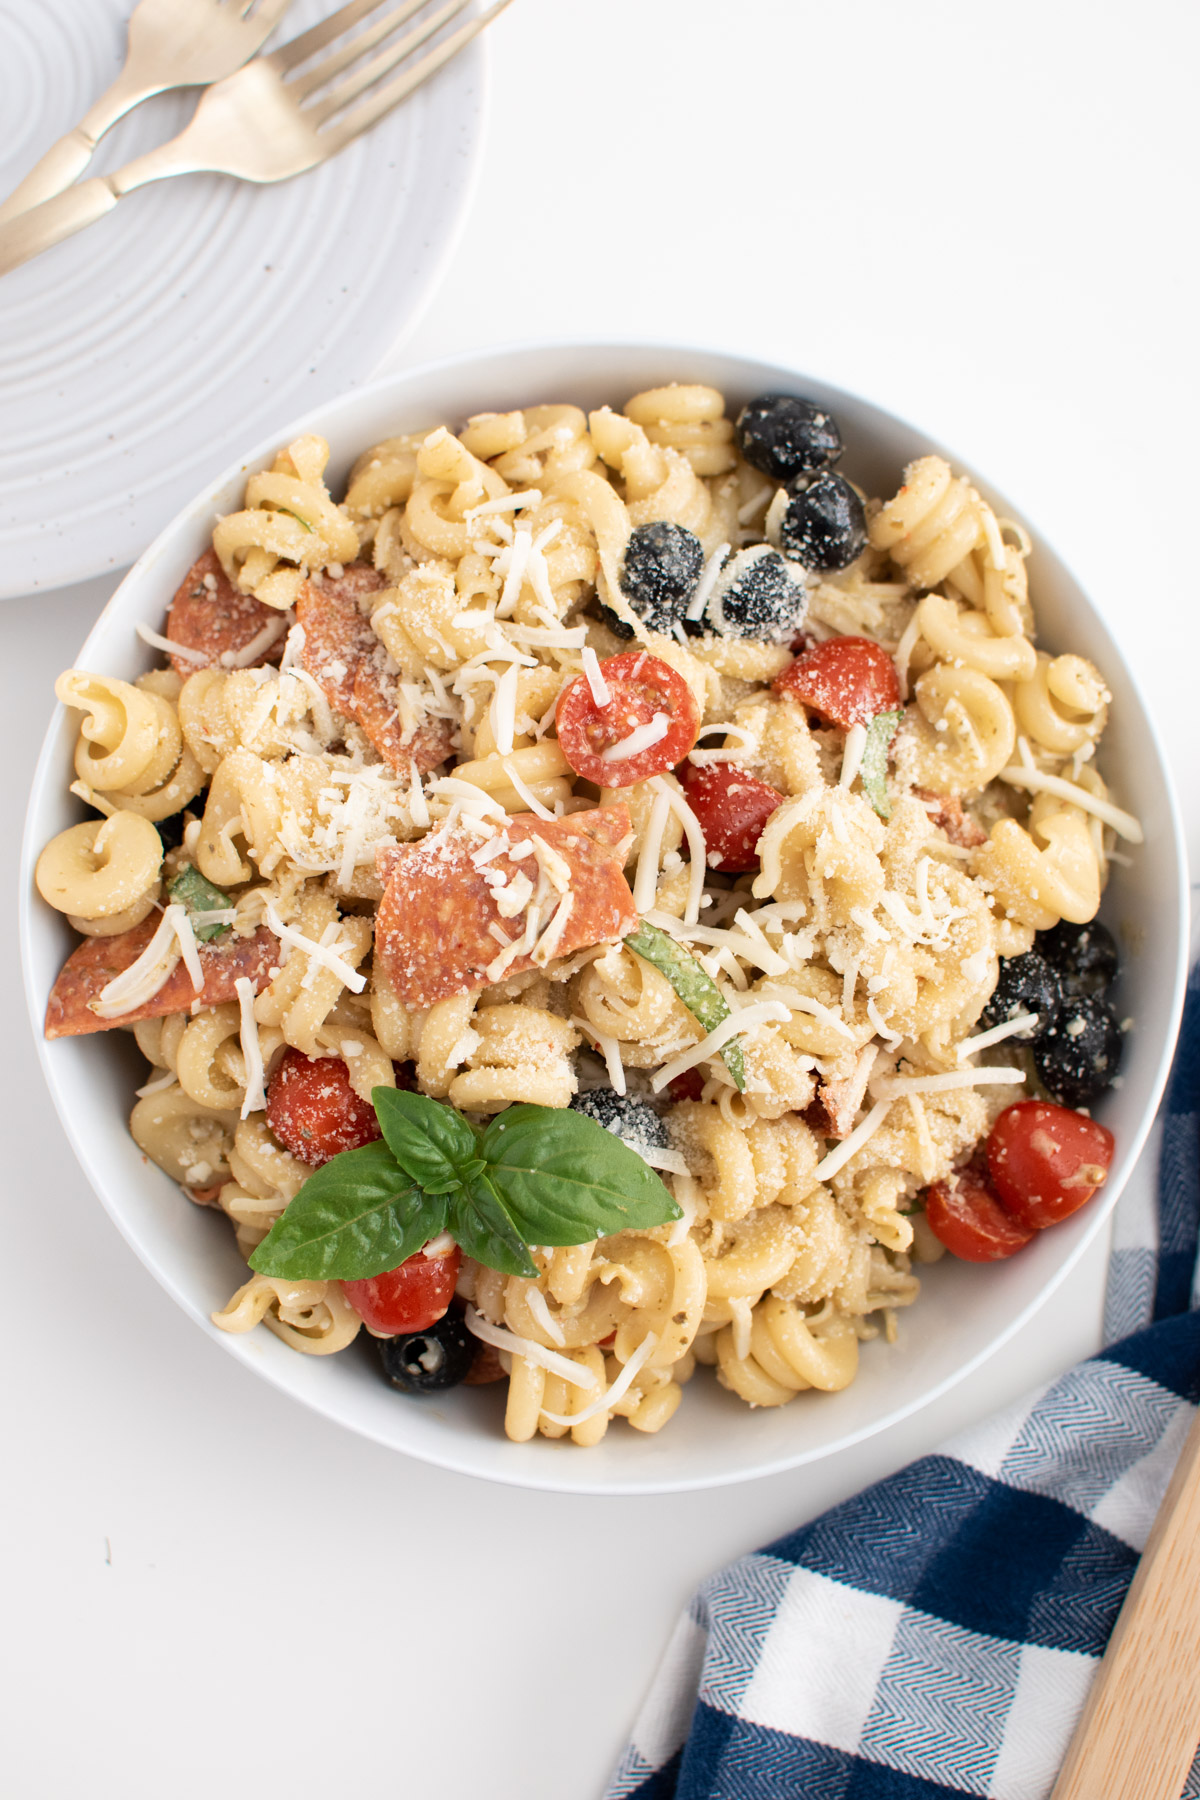 Large white bowl of pizza pasta salad with Parmesan and fresh basil leaves on top.